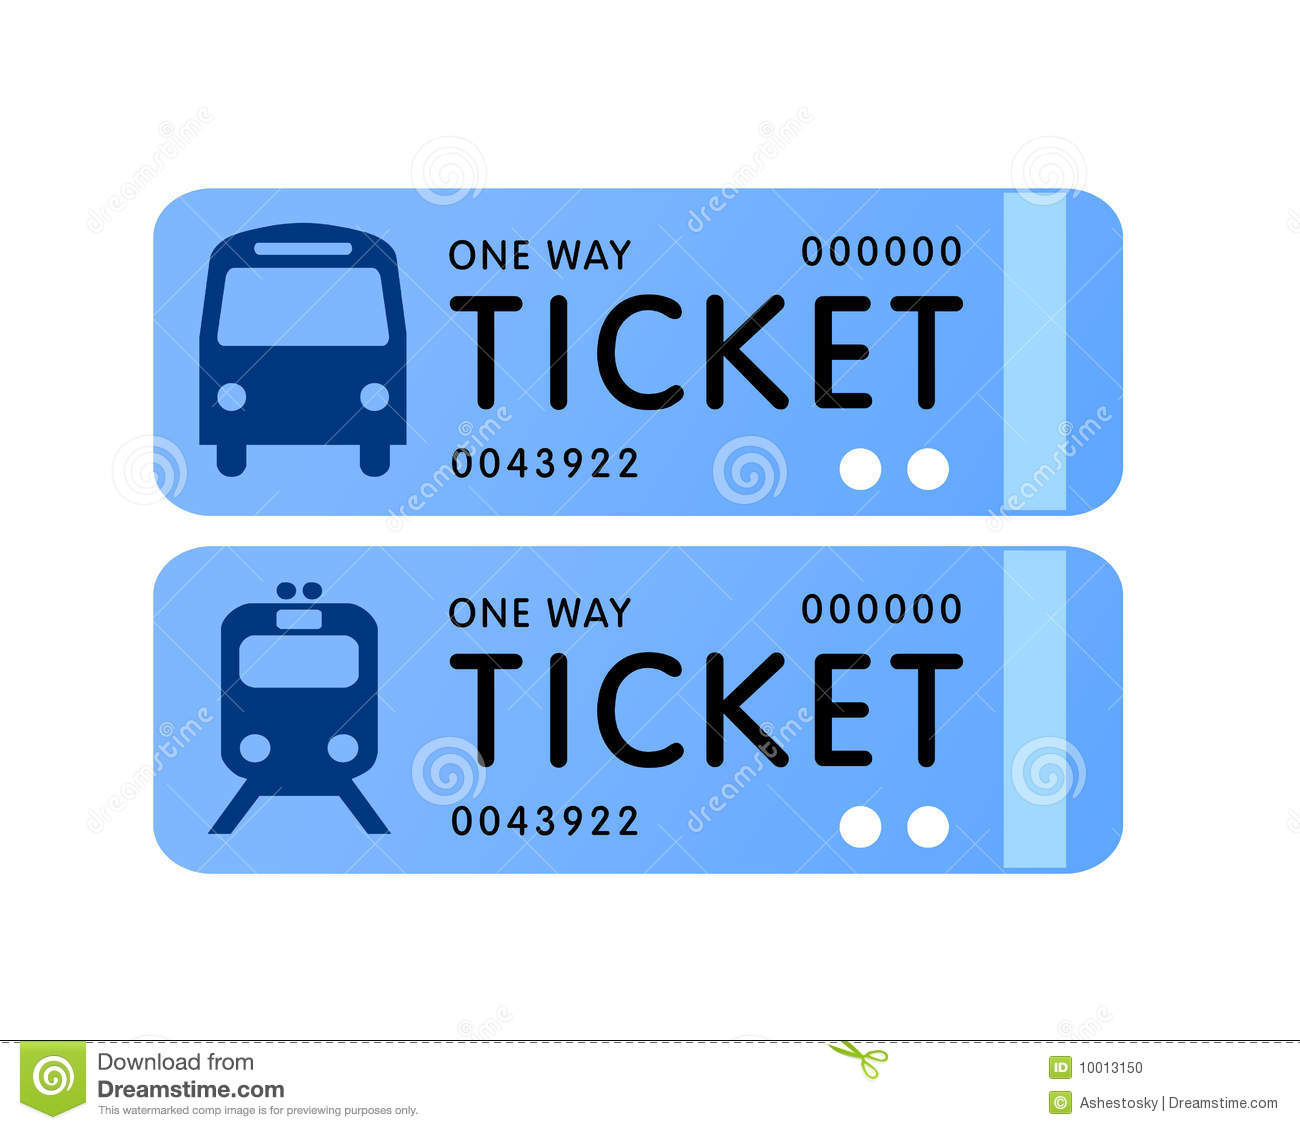 Printable train ticket template maxwellsz